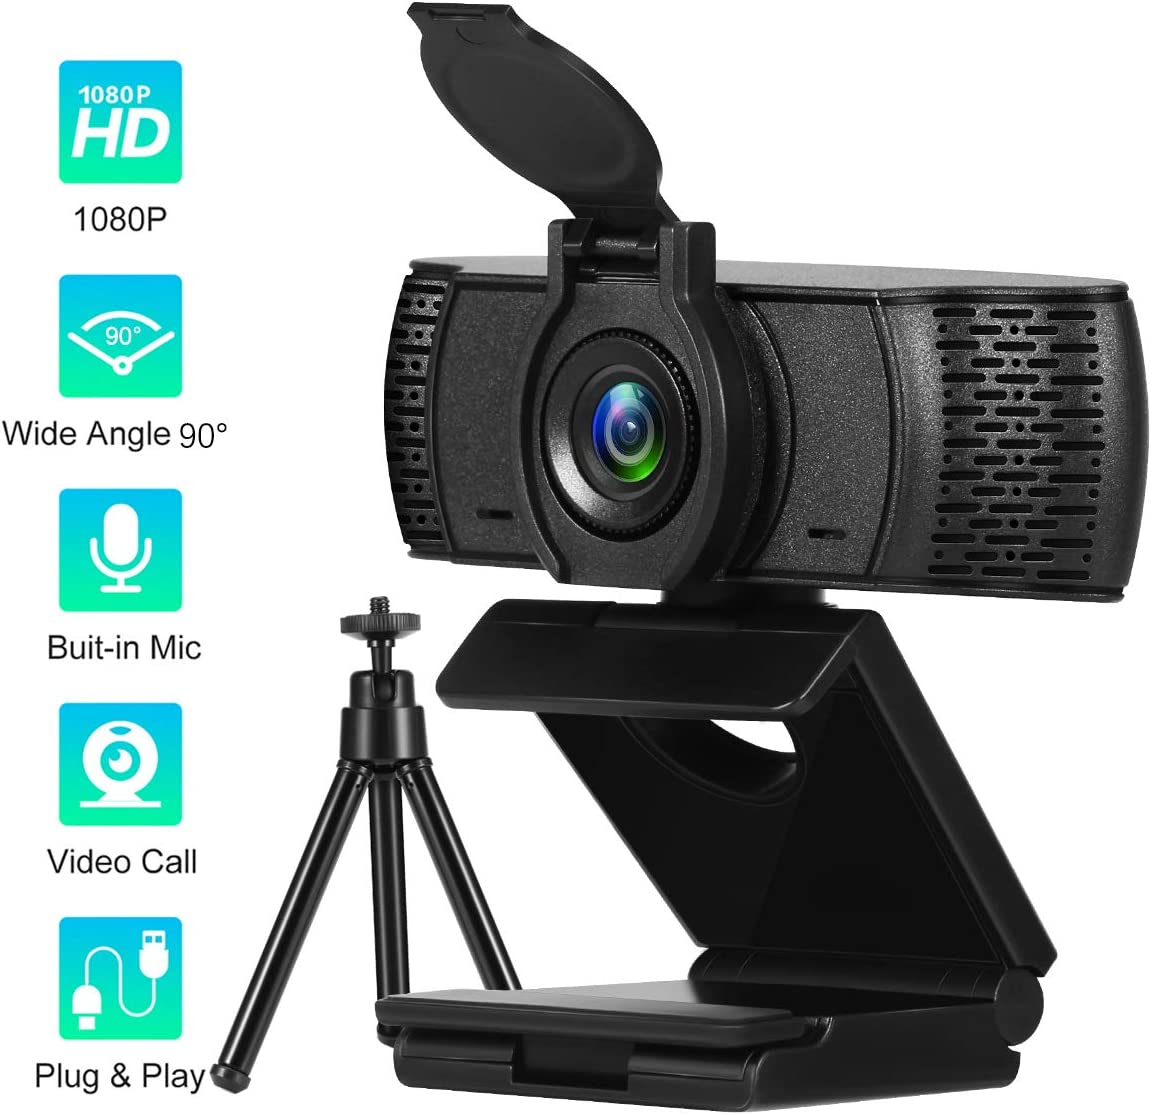 1080P Webcam with Microphone & Privacy Cover 90-Degree Wide Angle Web Camera for PC Mac Laptop Desktop Full HD Video Web Camera Flexible Rotatable Clip and Tripod